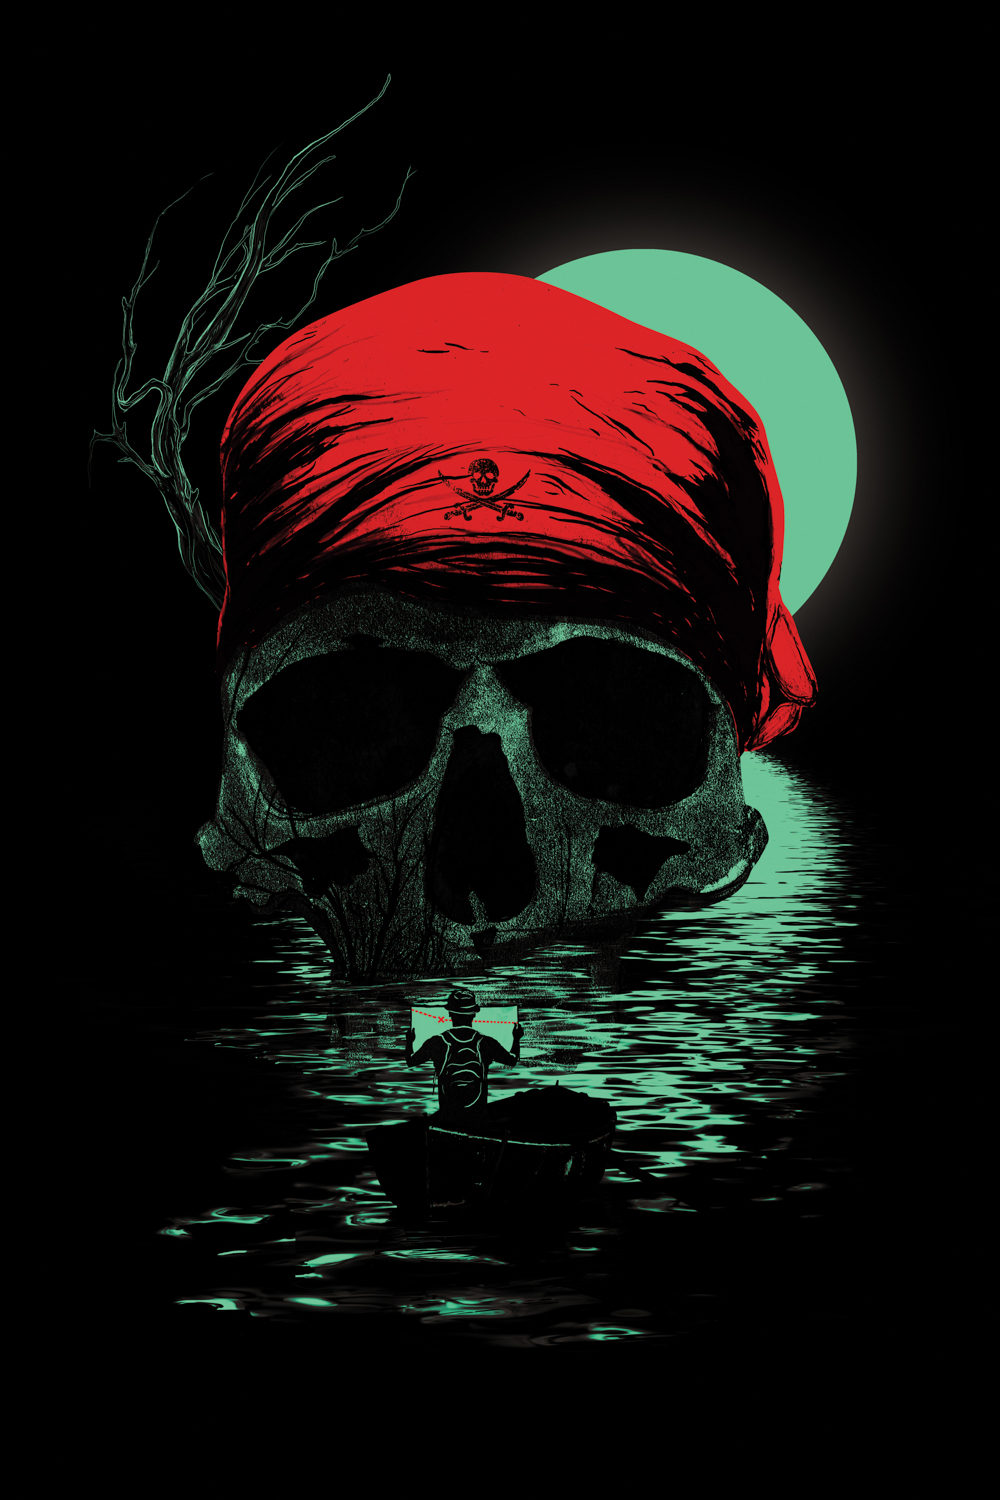 a large skull in the water wearing a red bandana with a person in a boat holding a map